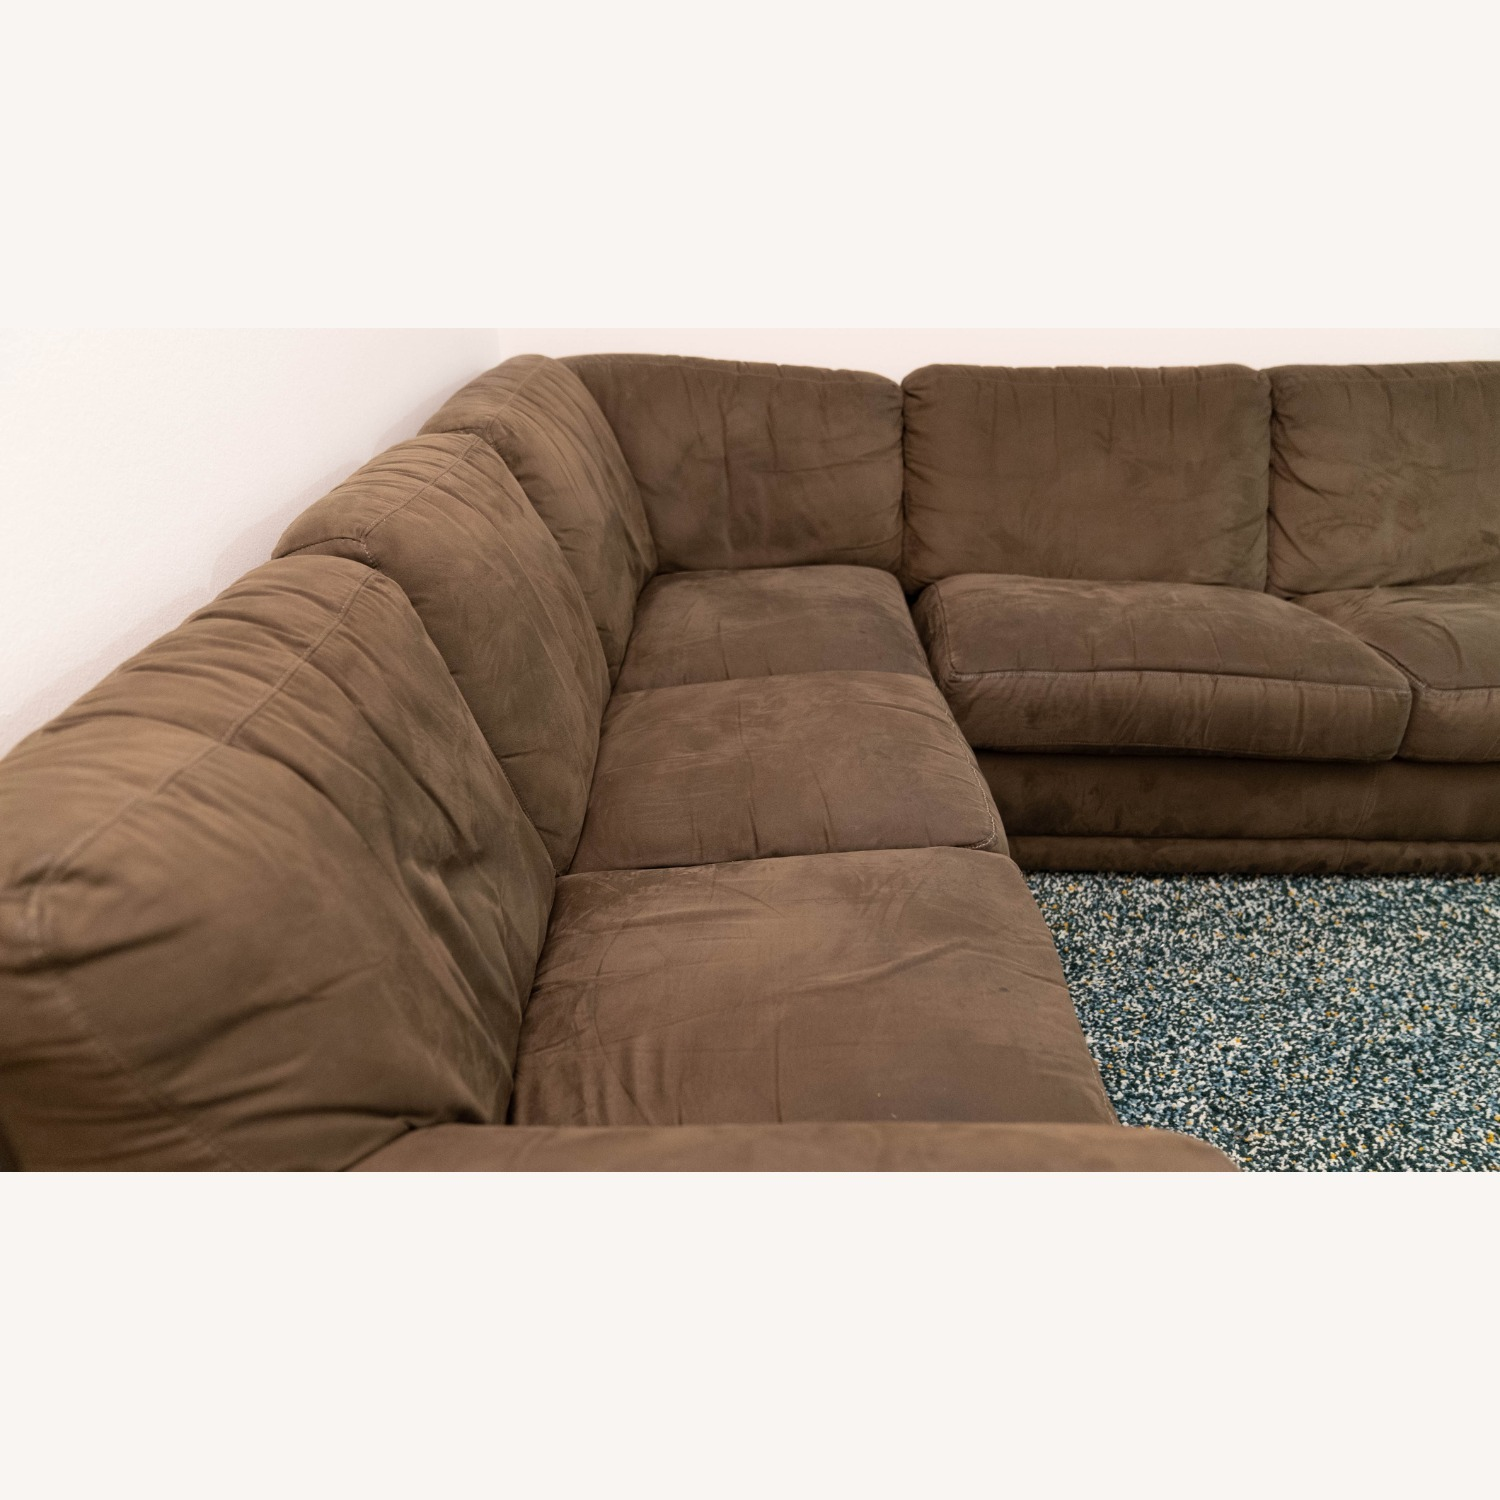 Super Comfortable Sectional Couch - image-4